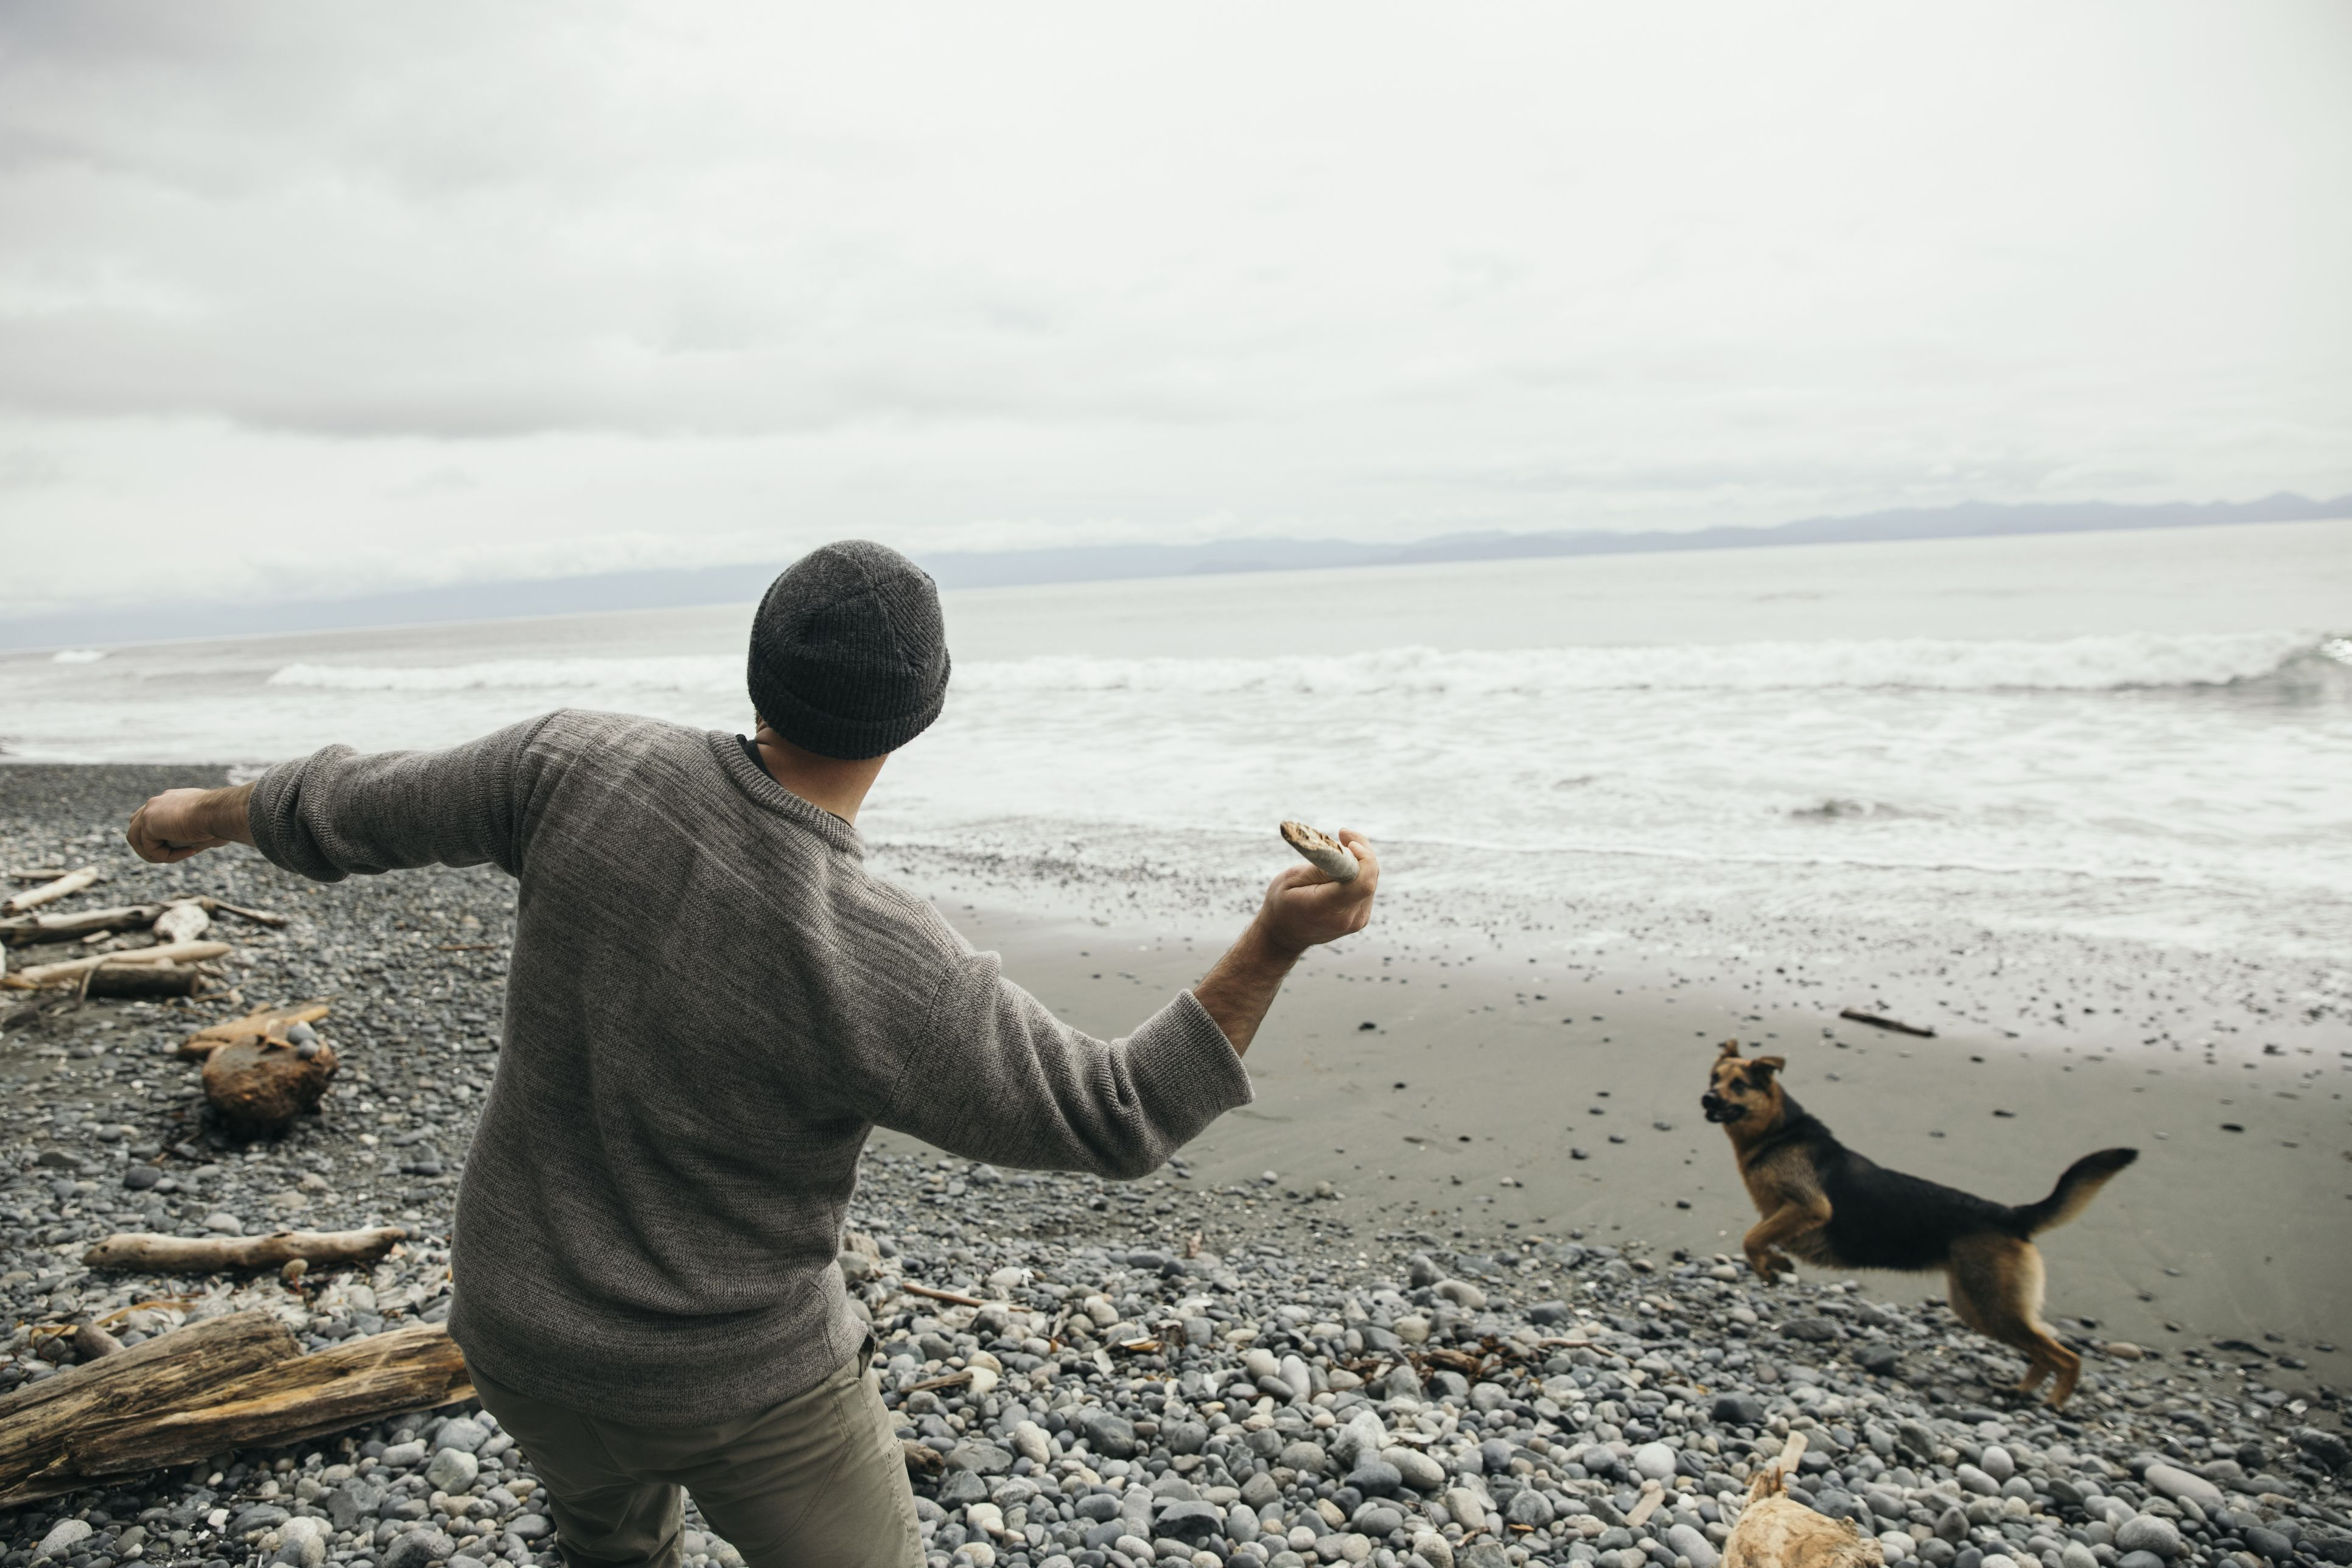 Man throwing stick for dog on rugged beach